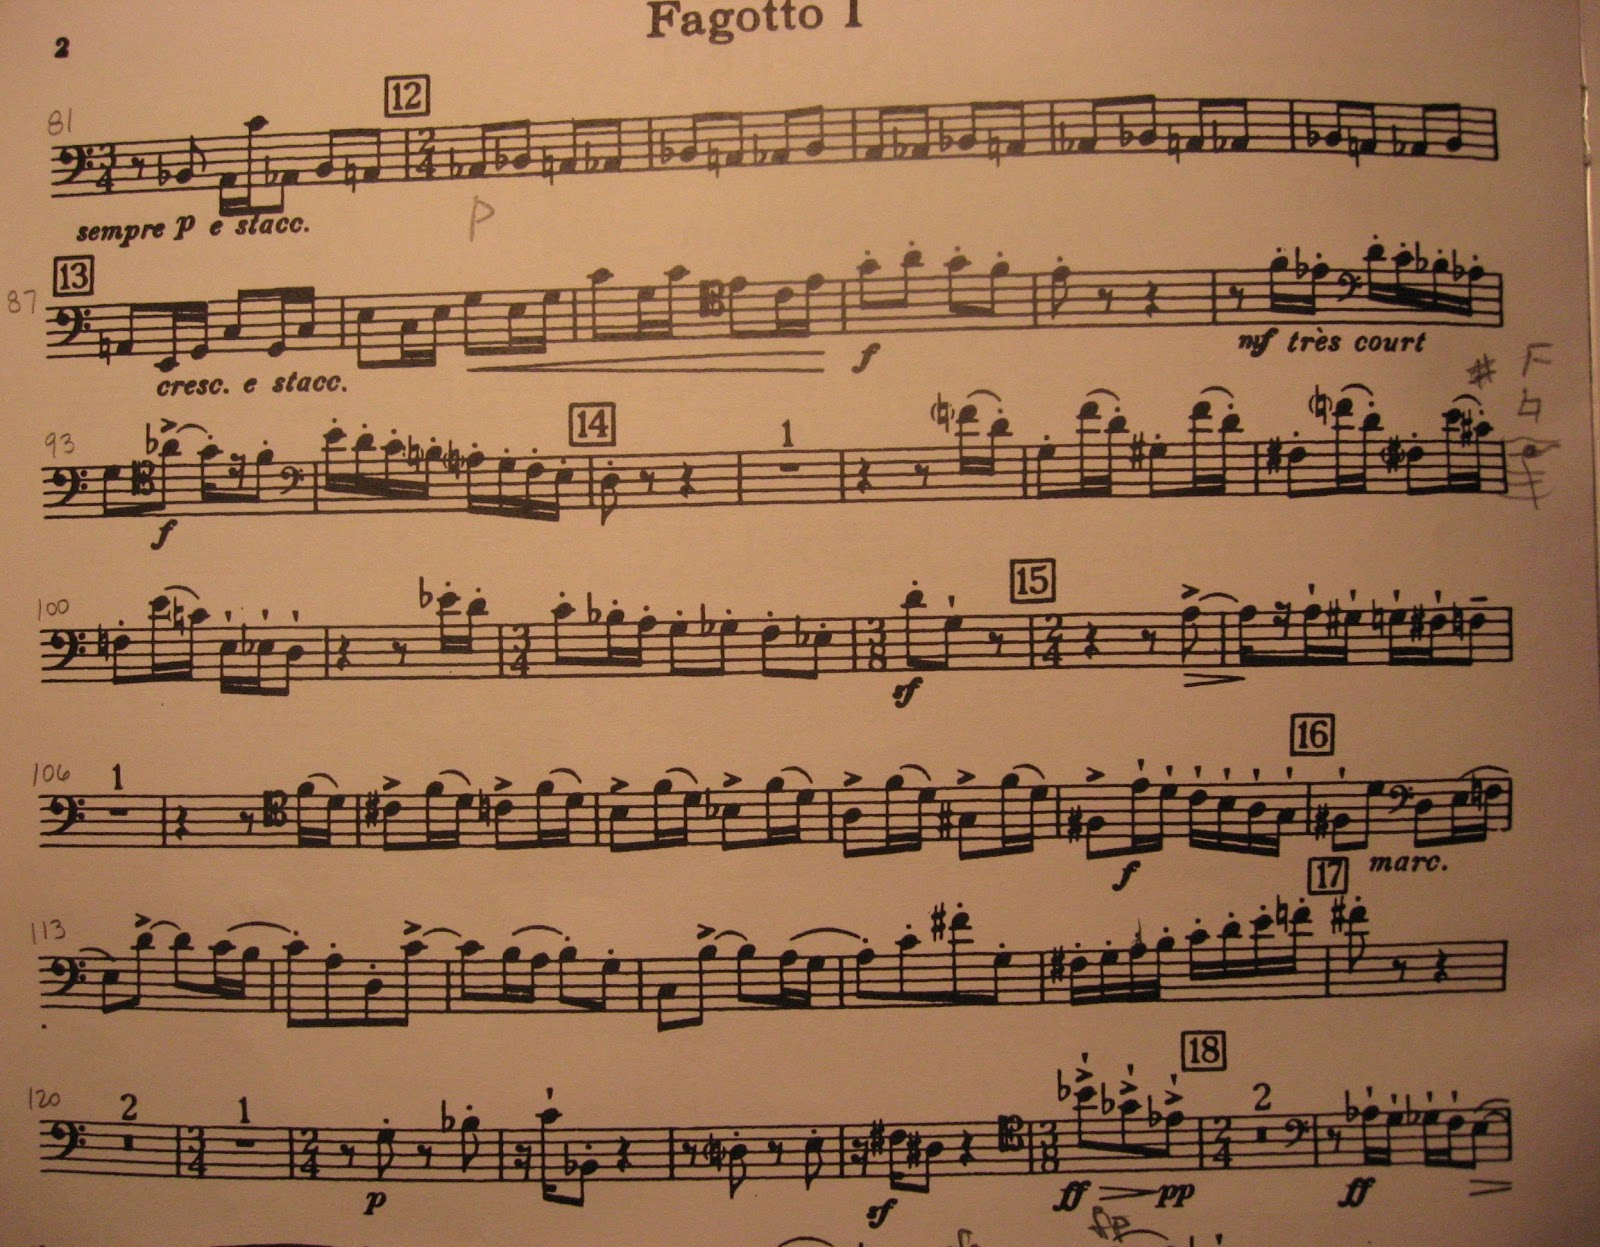 igor stravinsky rite of spring essay Stravinsky uses orchestration in new and amazing ways in the rite of spring which still seem revolutionary even now first there is the composition of the orchestra.